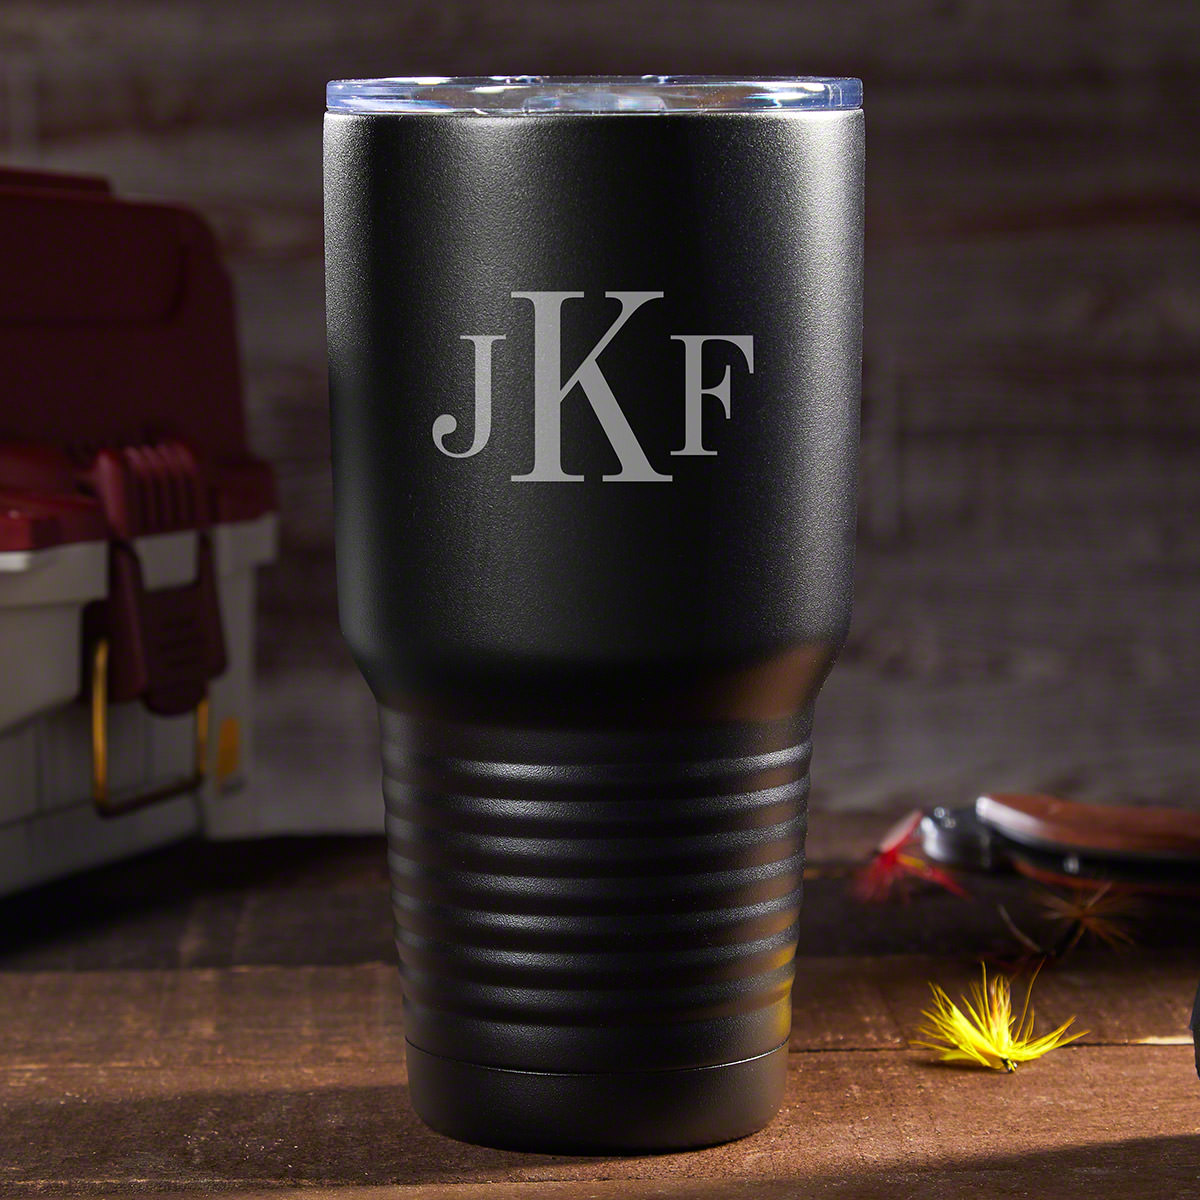 When you have a million things to worry about you shouldn't add the hassle of having to chug down your hot coffee as to not waste it. Keep things scorching hot or cool as a cucumber with this awesome personalized insulated travel mug. Crafted from 18/8 do #mug